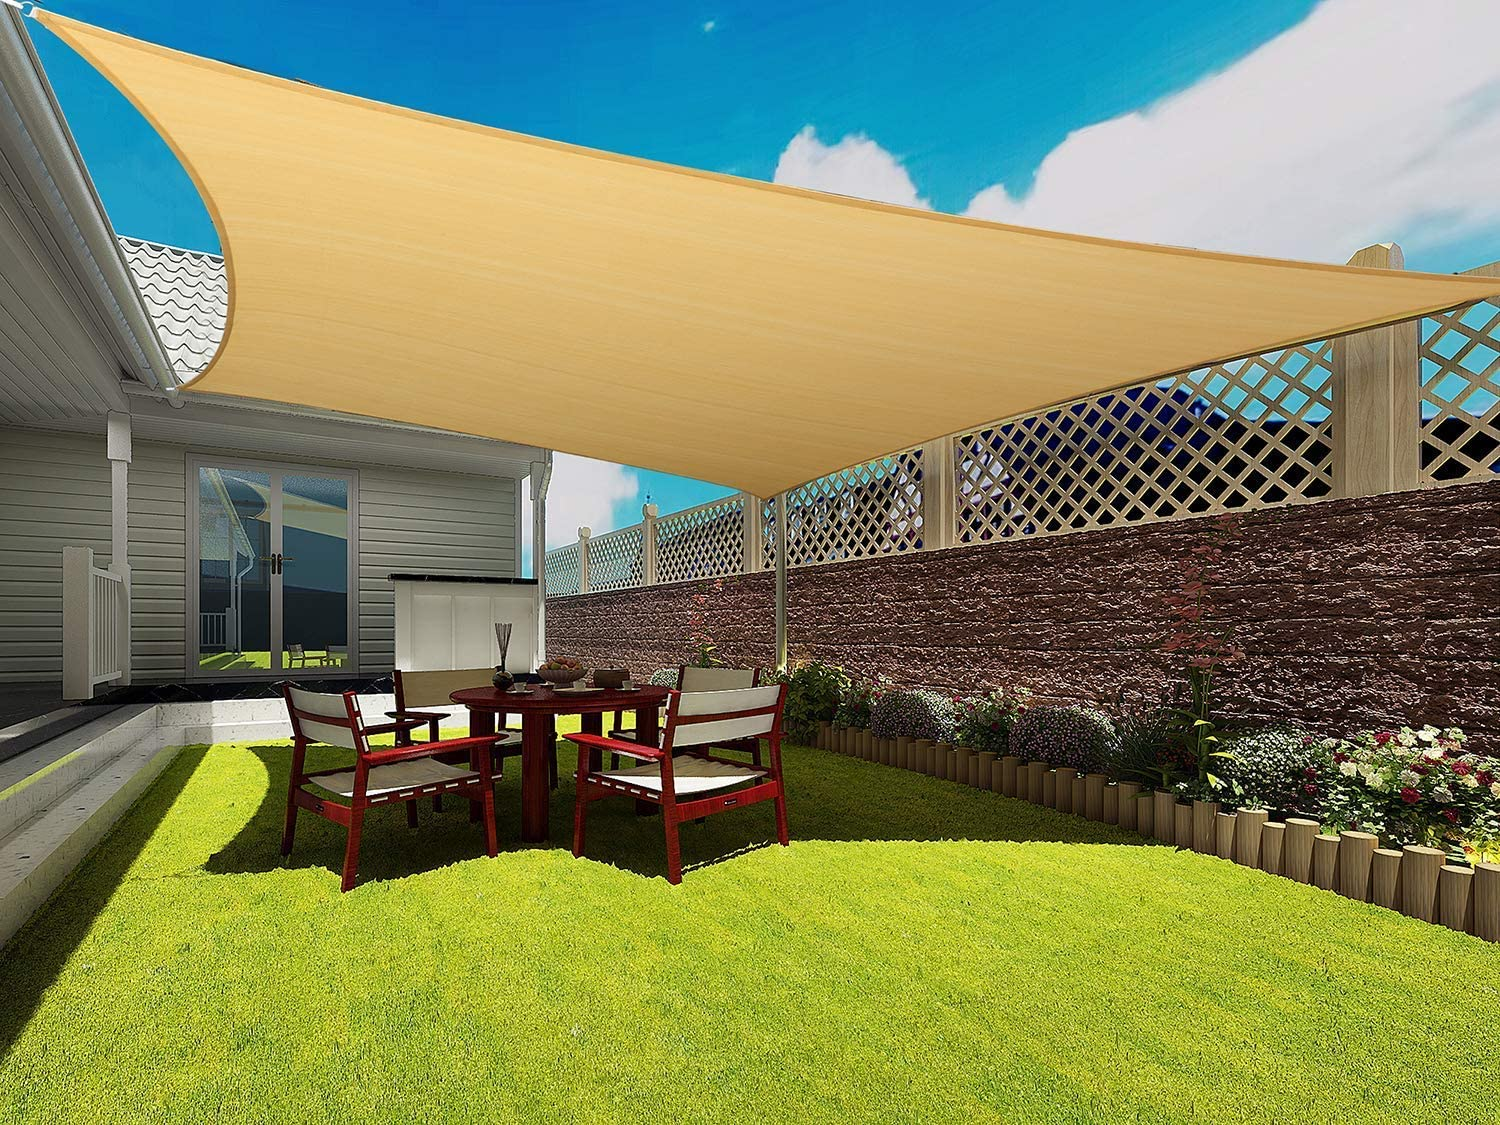 LL-WZB Rectangular Toldo Universal Pergola Kit Playa: Amazon.es: Hogar